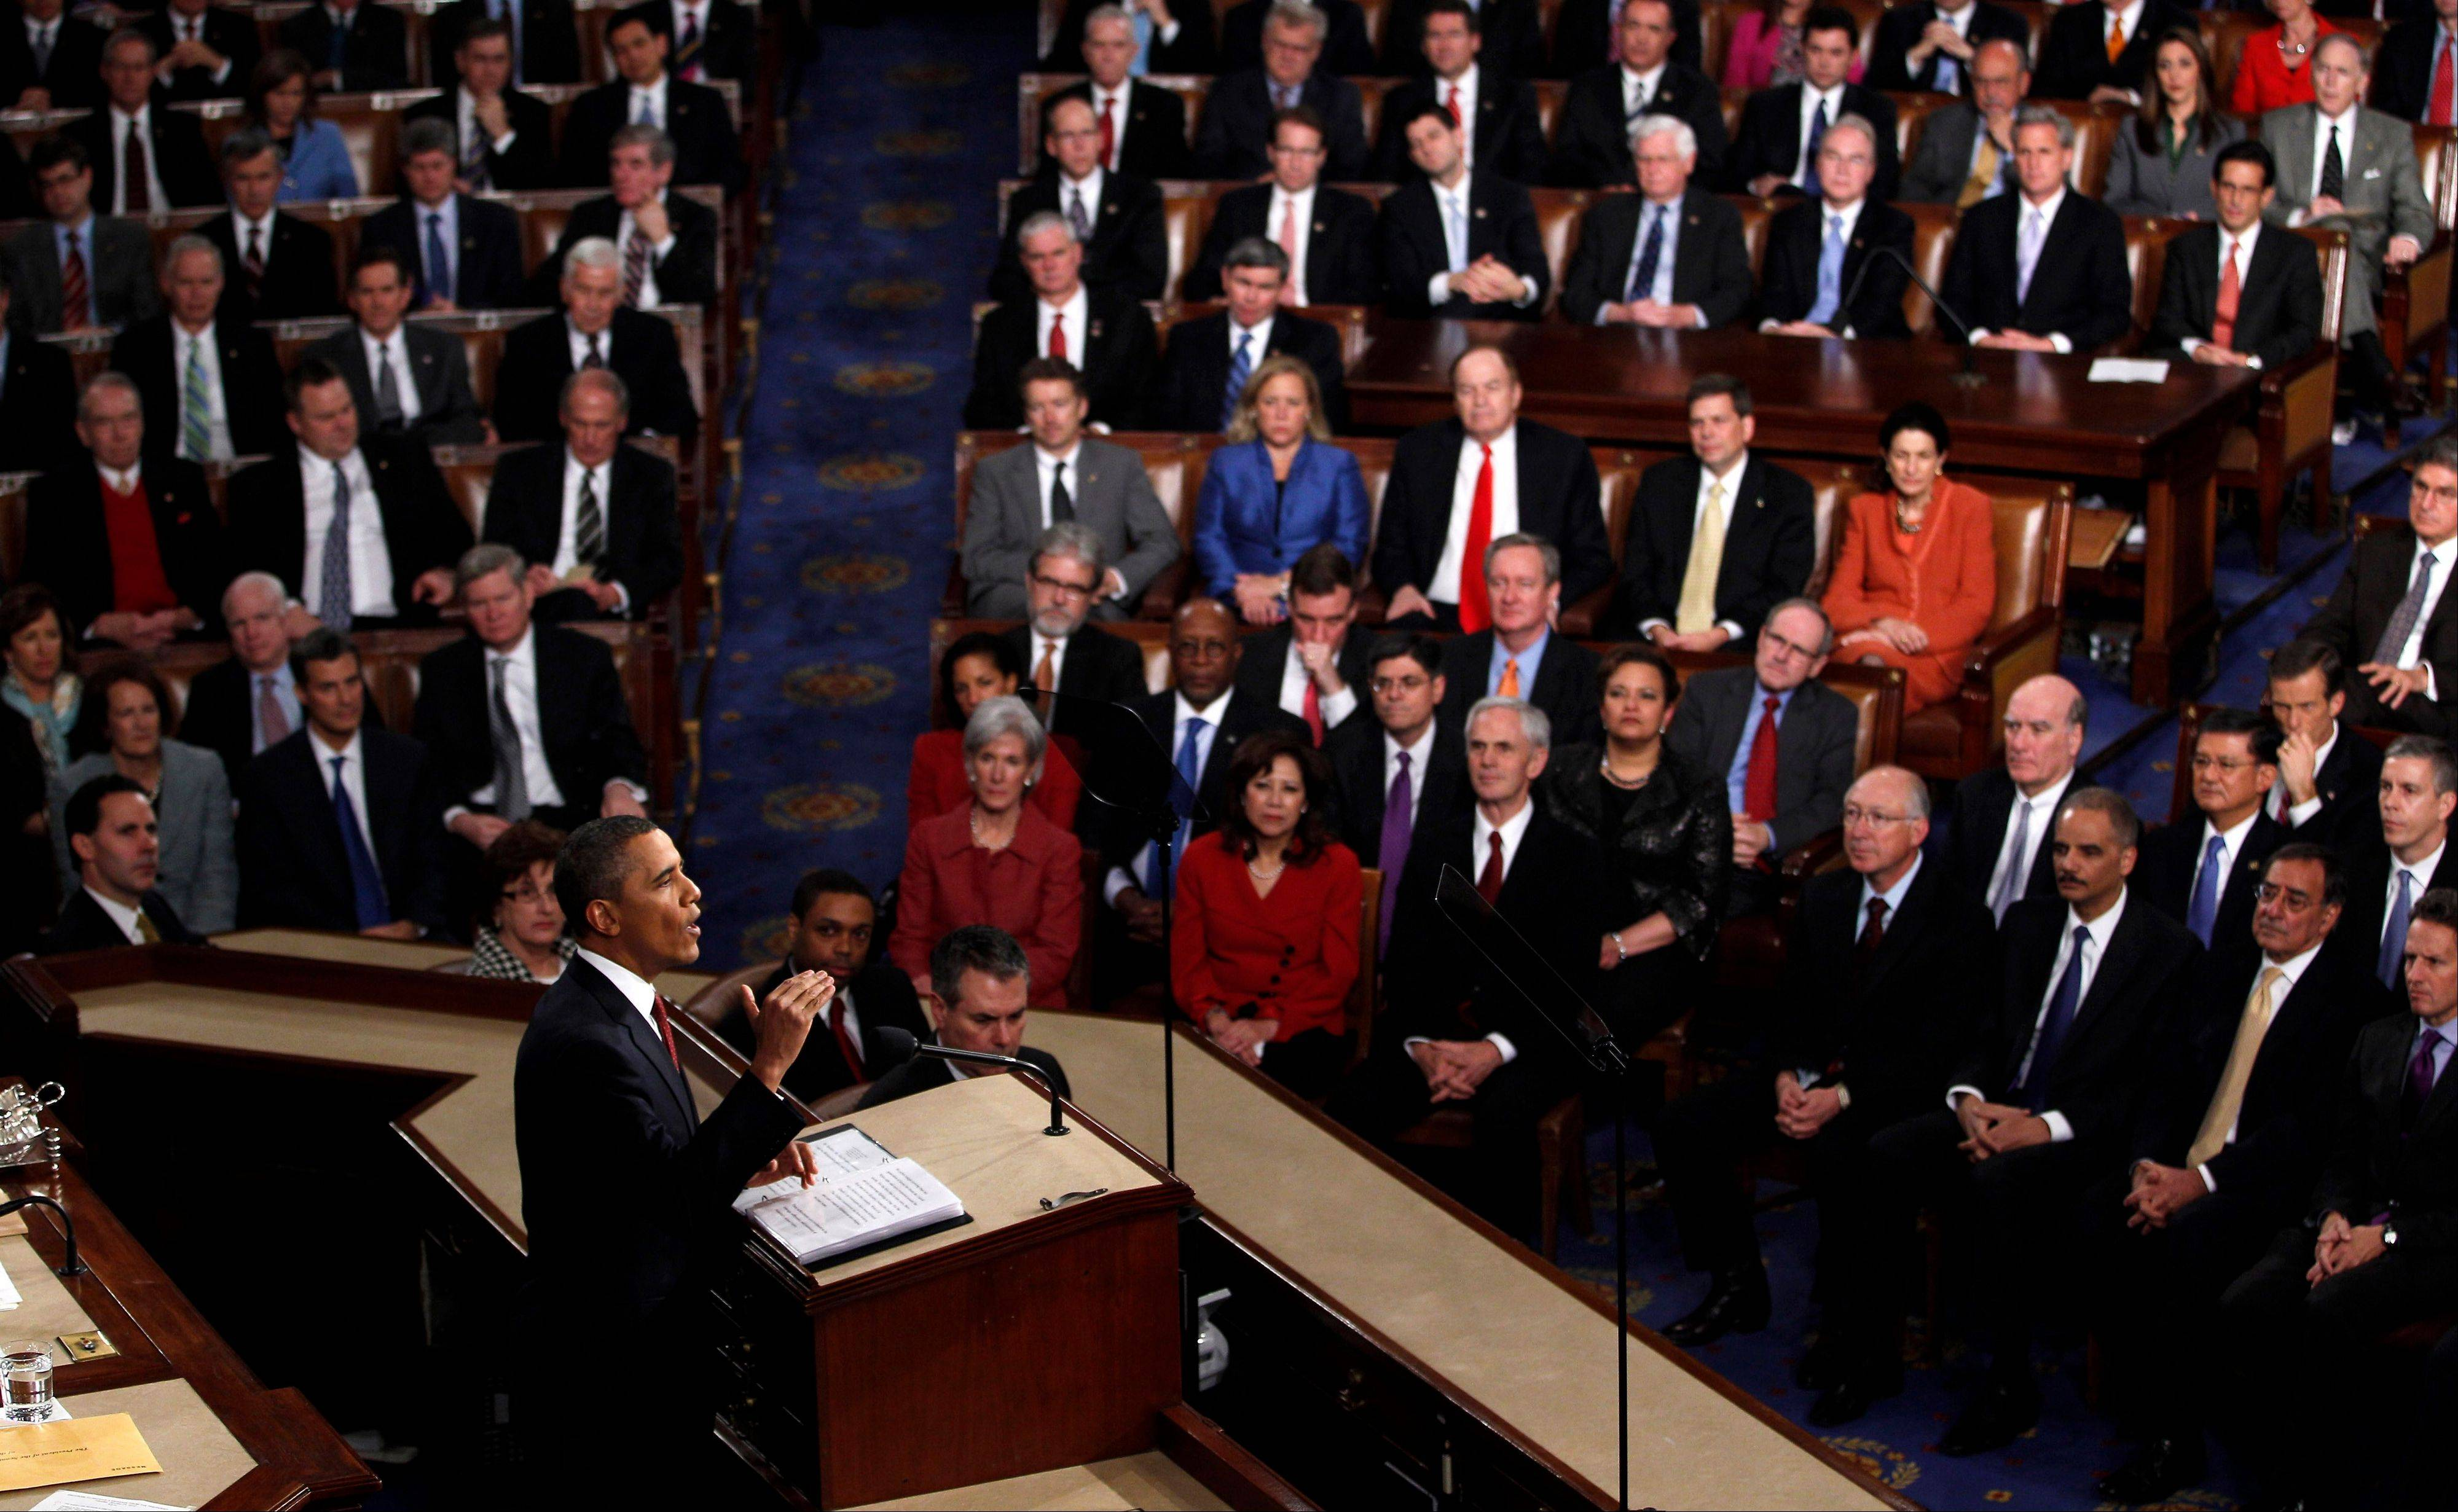 In this Jan. 24, 2012 photo, President Barack Obama delivers his State of the Union address on Capitol Hill in Washington.